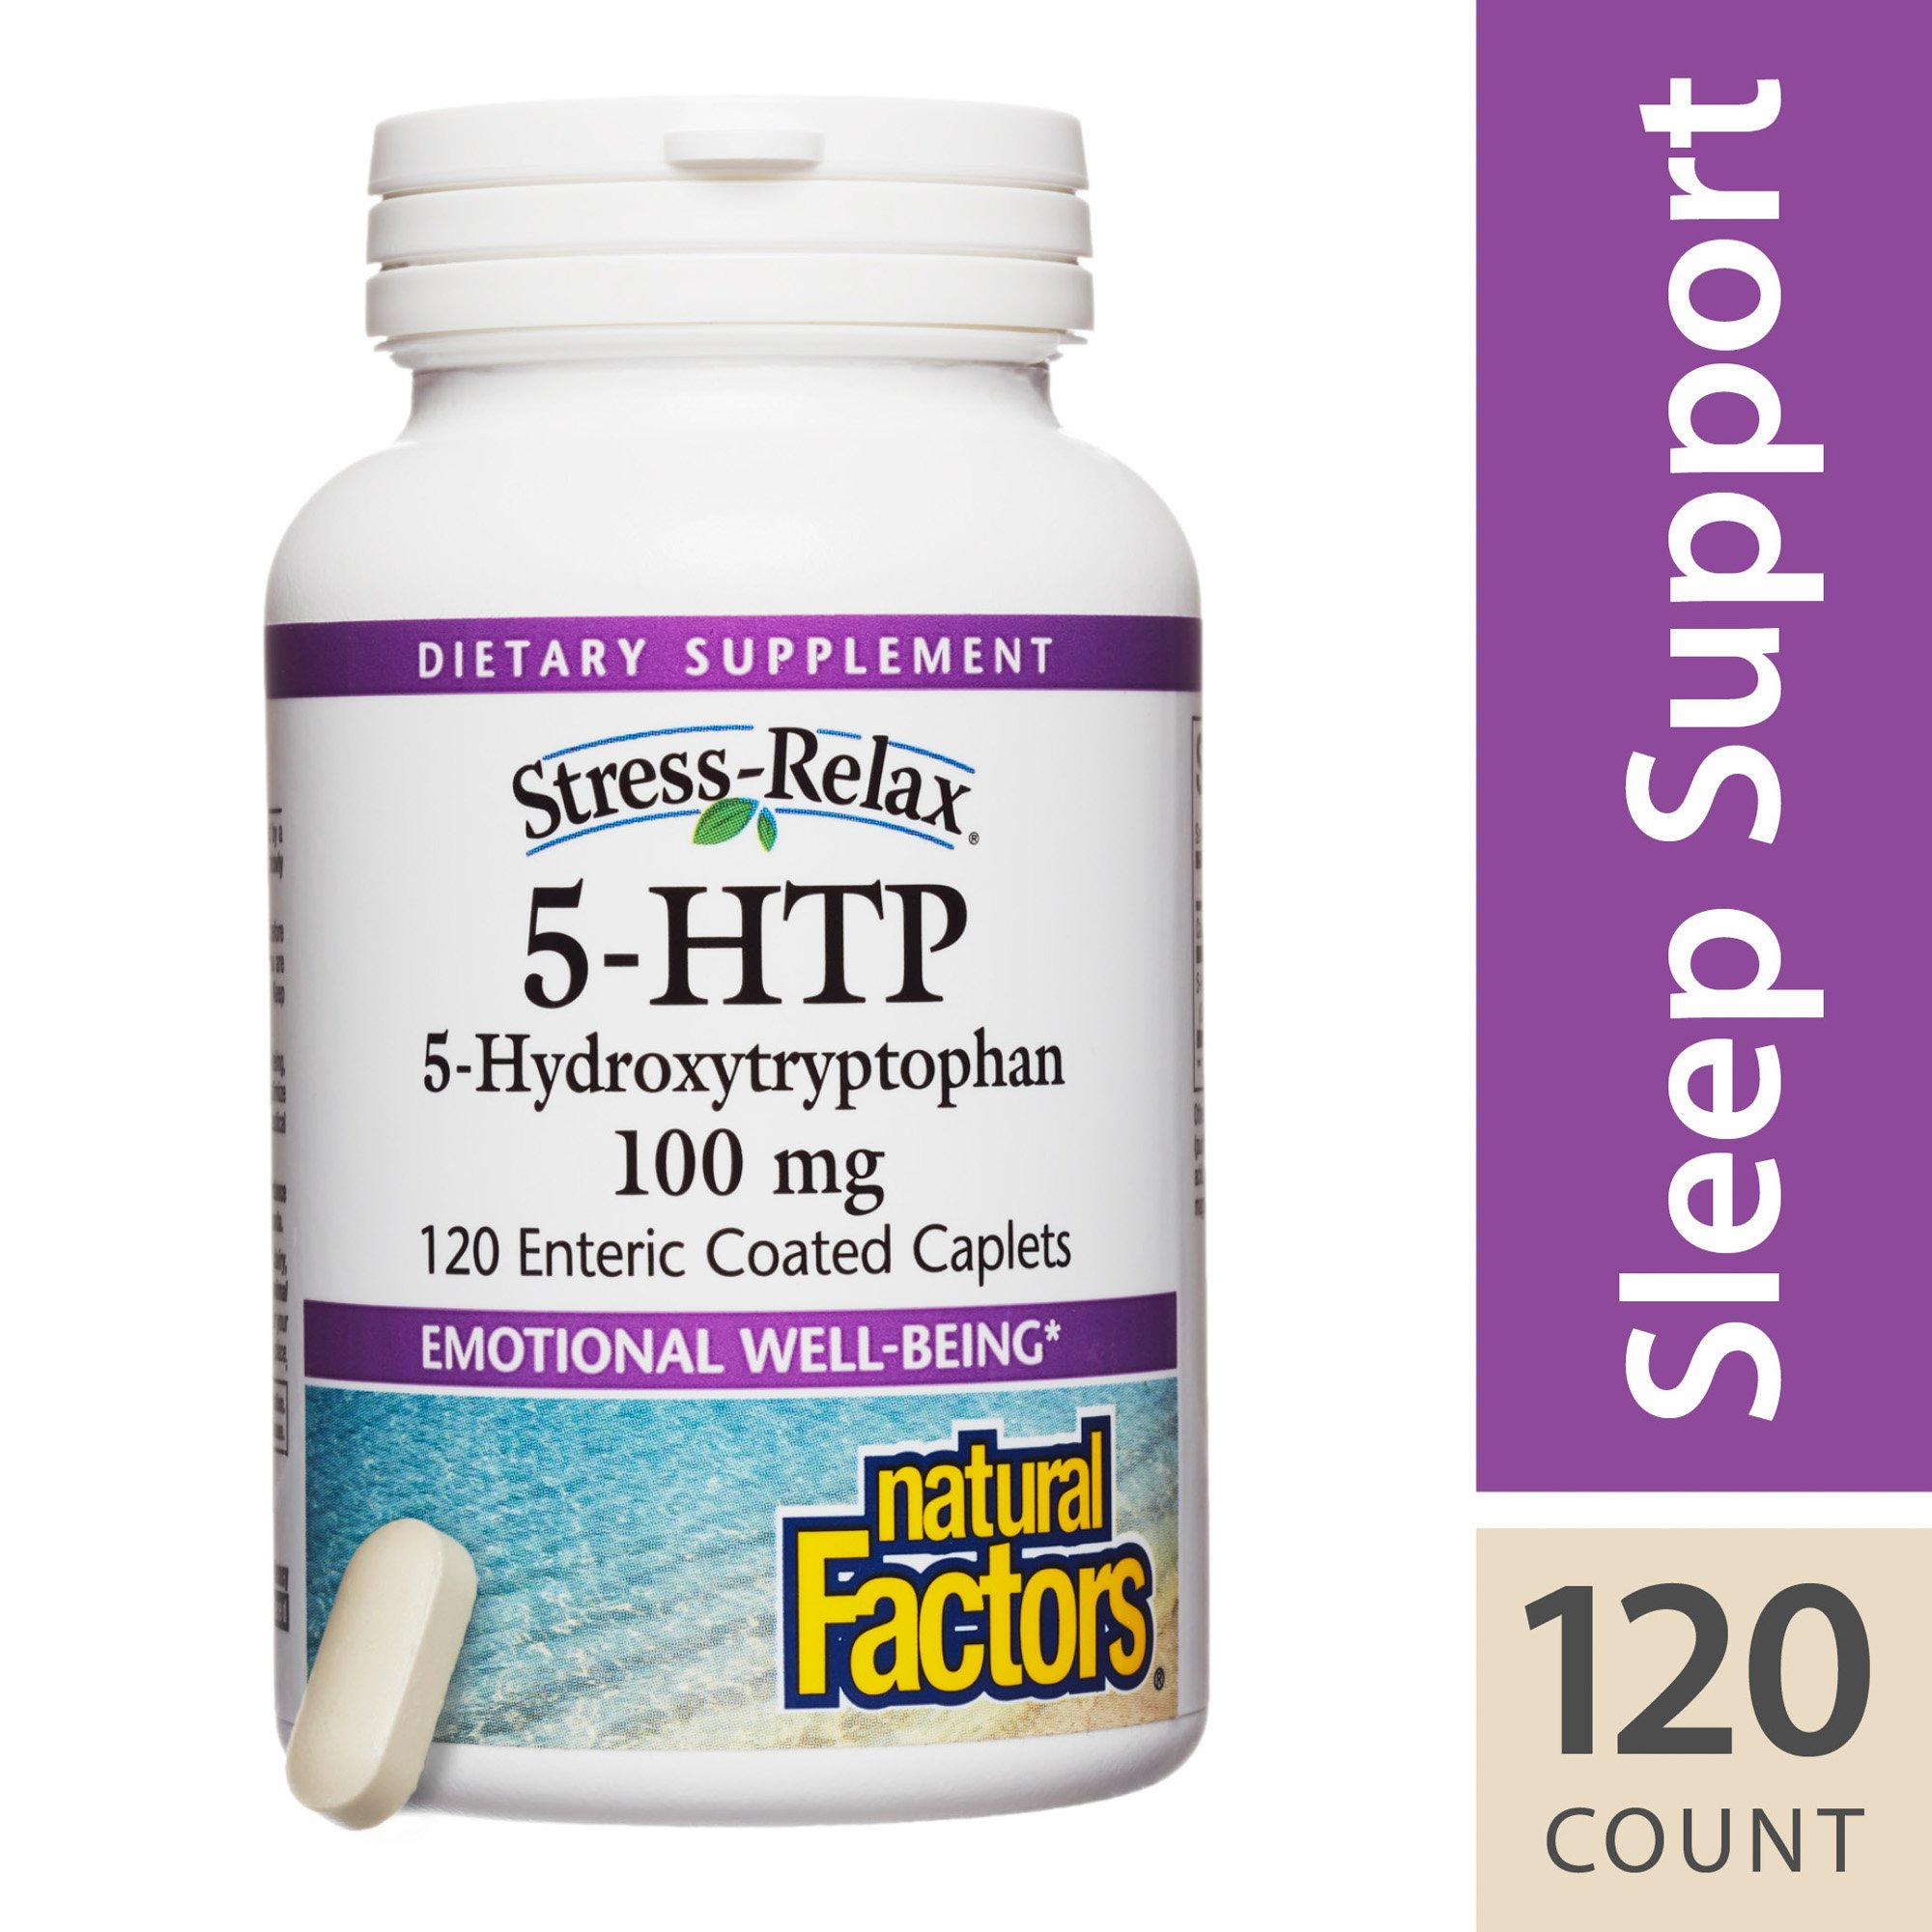 Natural Factors - Stress-Relax 5-HTP 100mg, Supports Emotional Well-Being, 120 Enteric Coated Caplets